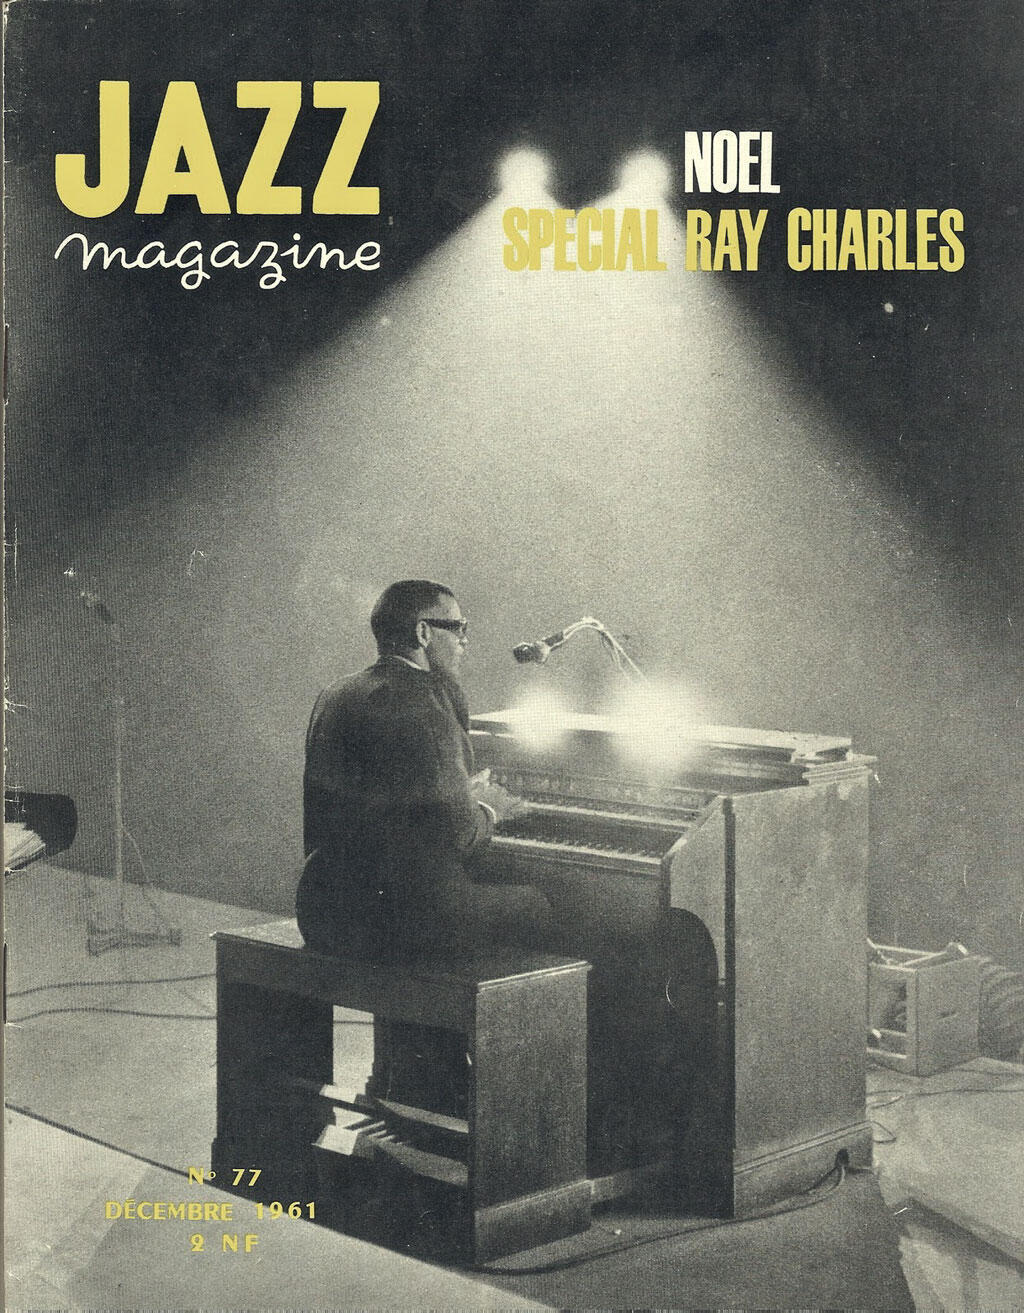 Ray Charles - Jazz Magazine - Décembre 1961.